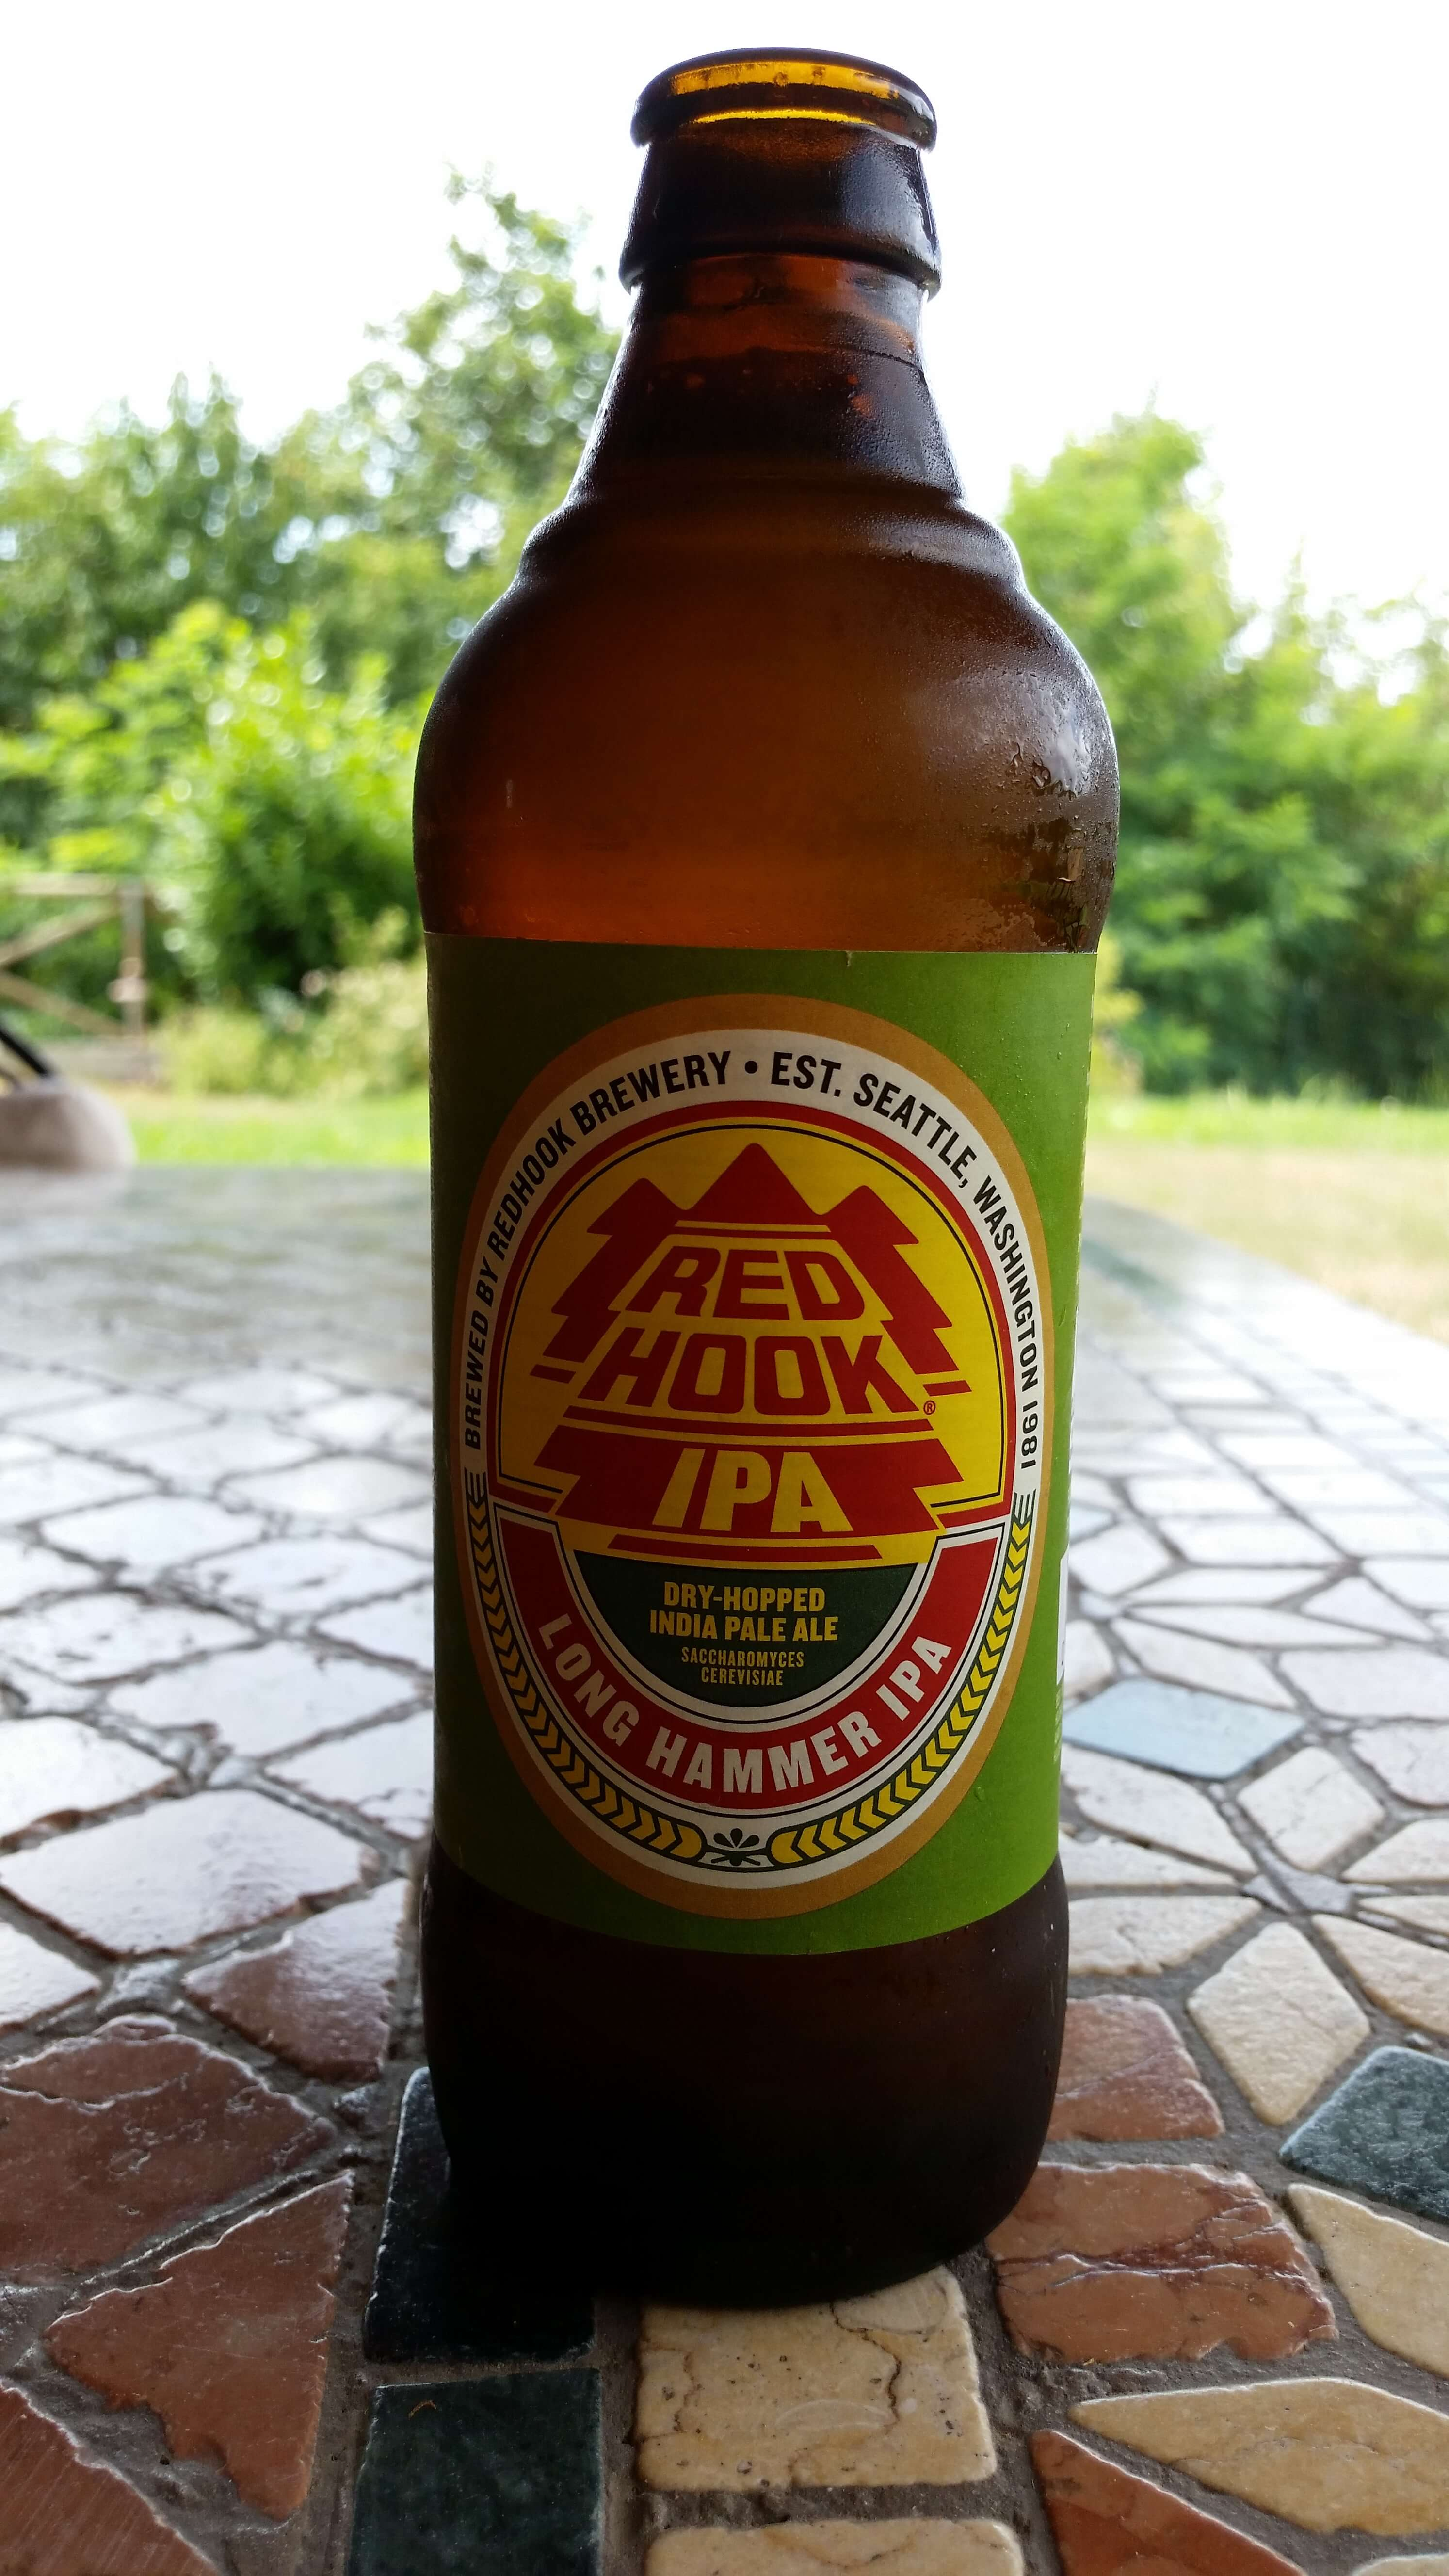 Redhook Brewery Redhook Long Hammer IPA